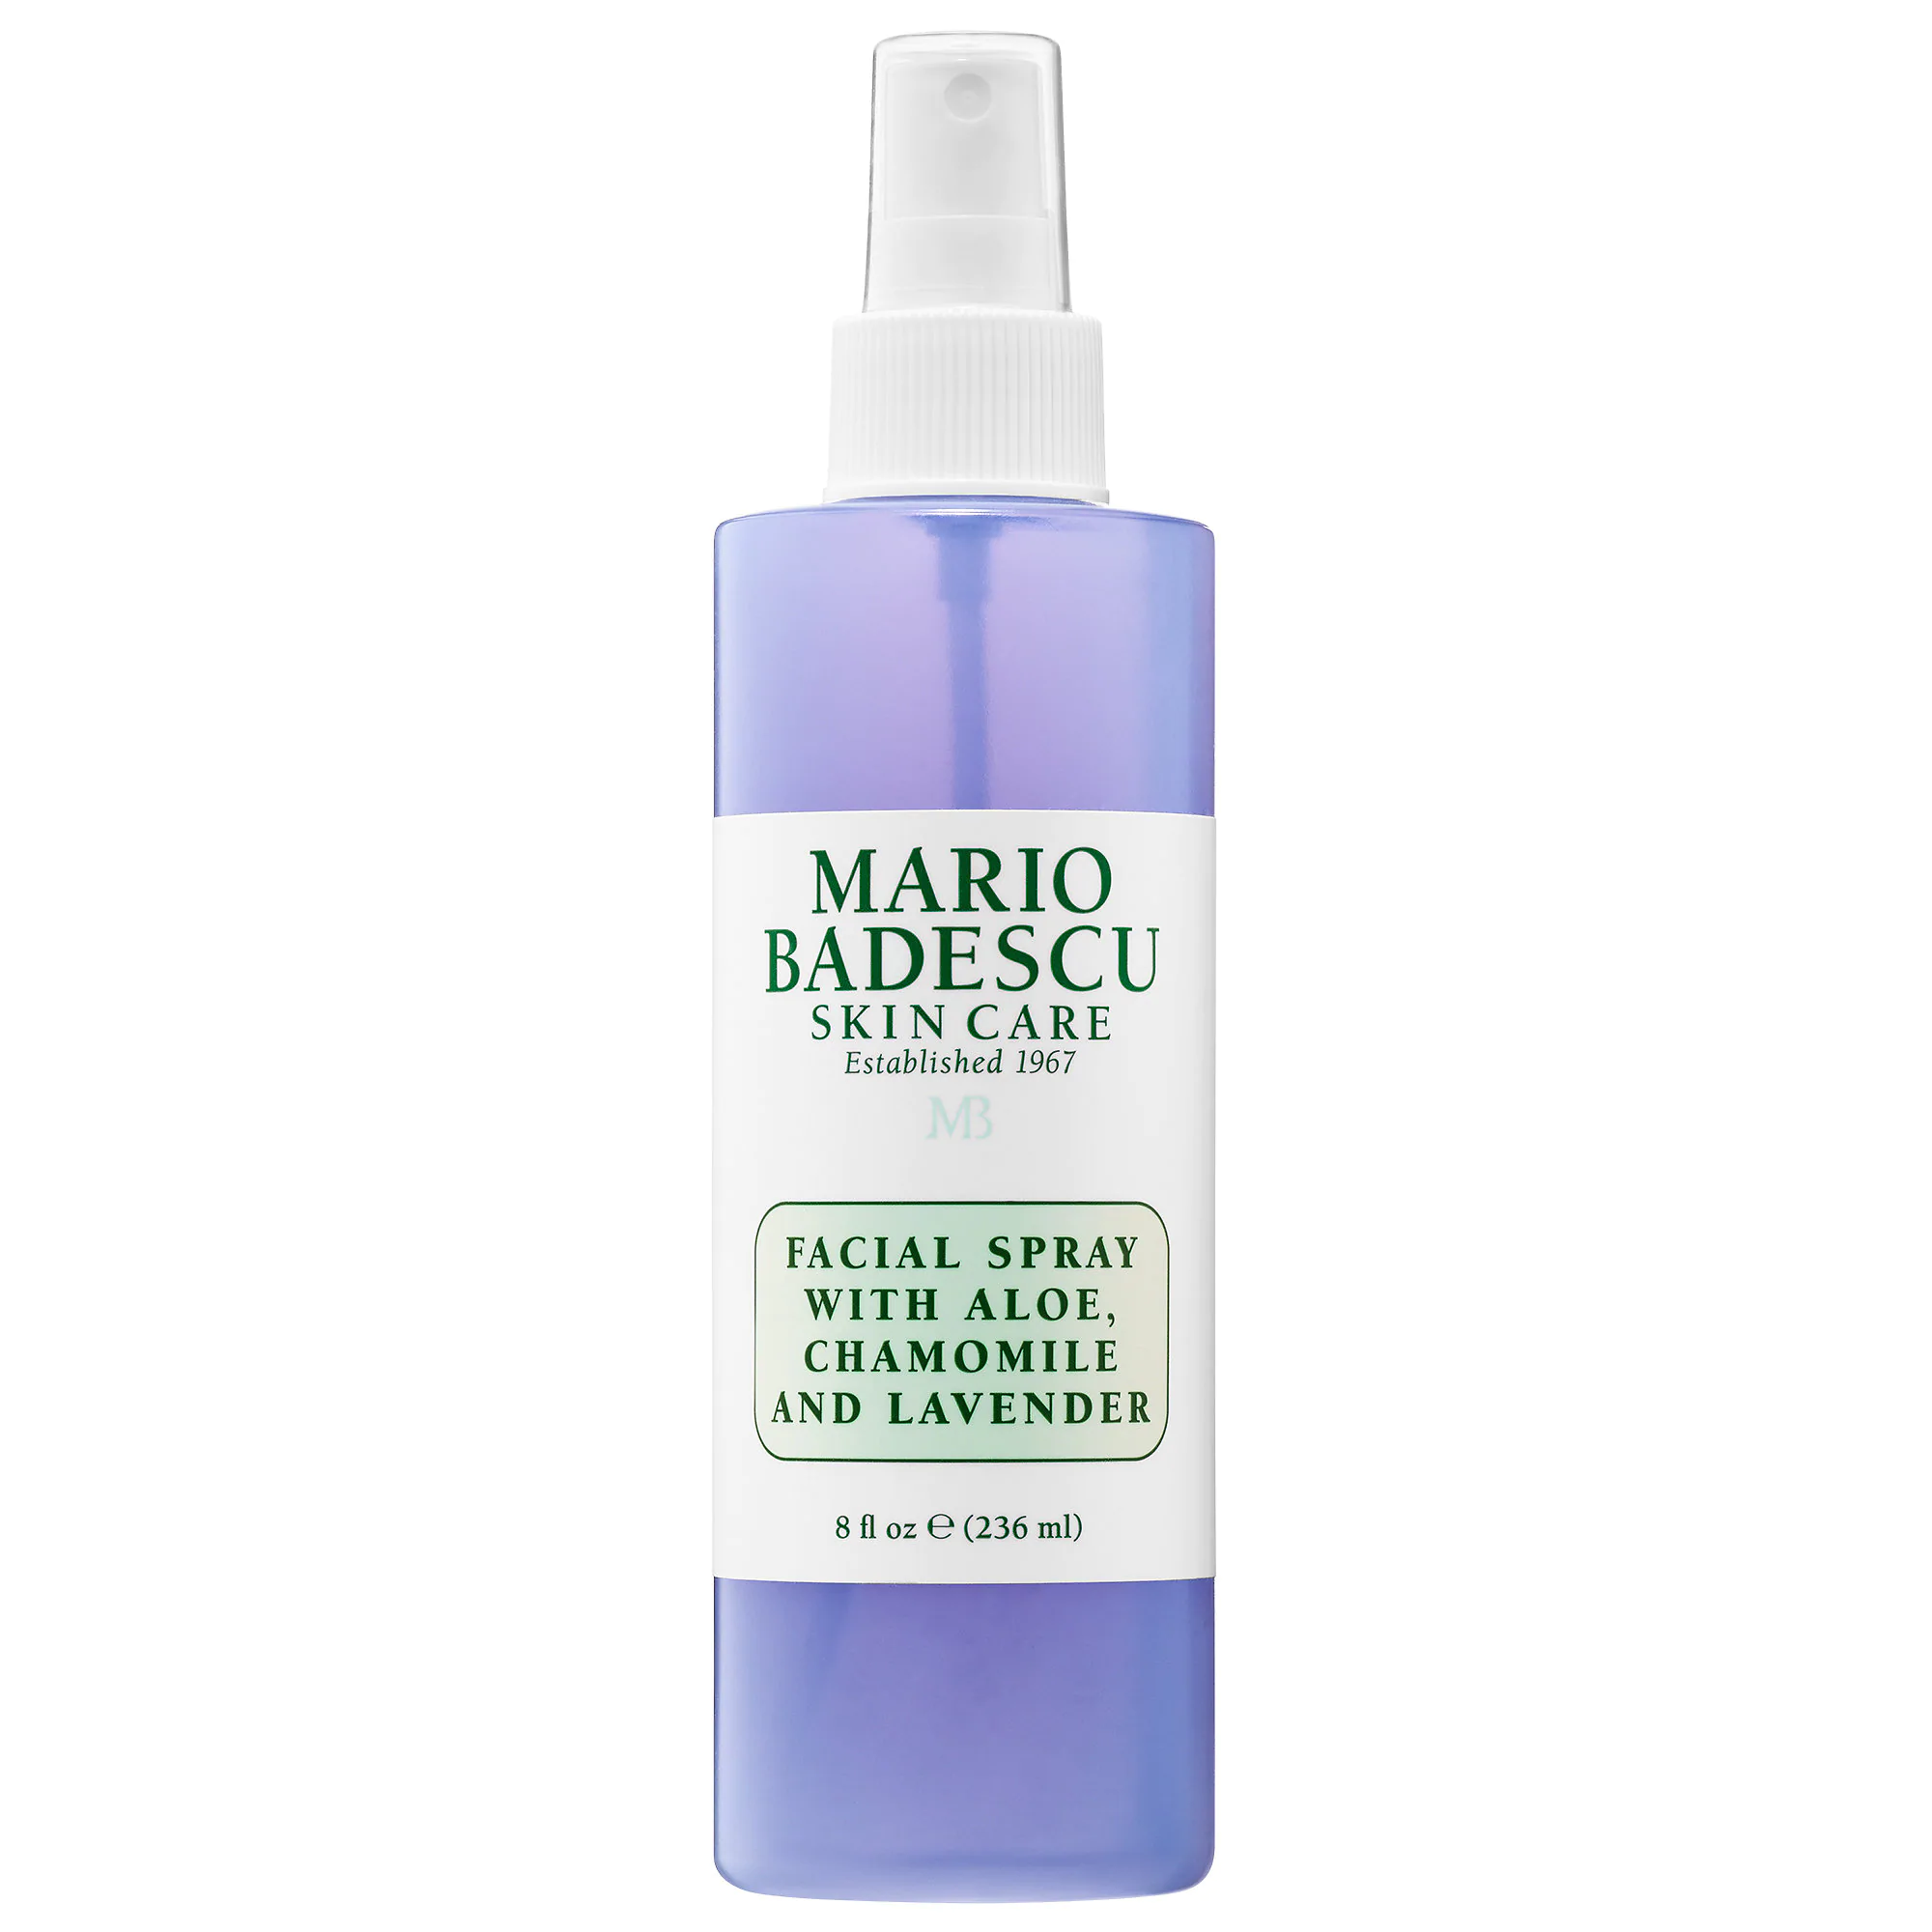 Mario Badescu-Facial Spray With Aloe, Chamomile And Lavender